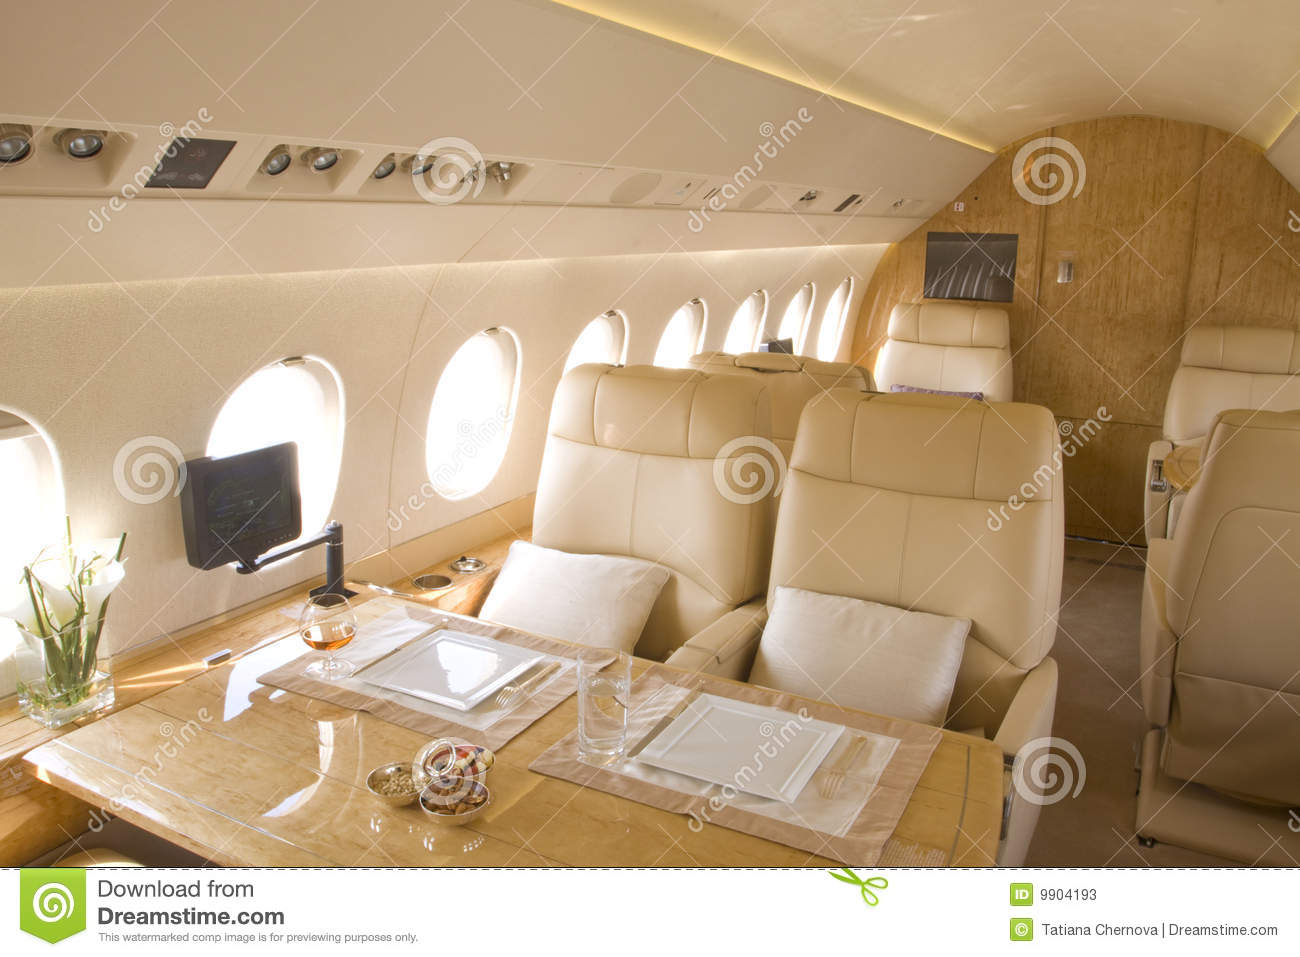 Avion r action d 39 int rieur d 39 affaires photos stock for Interieur avion